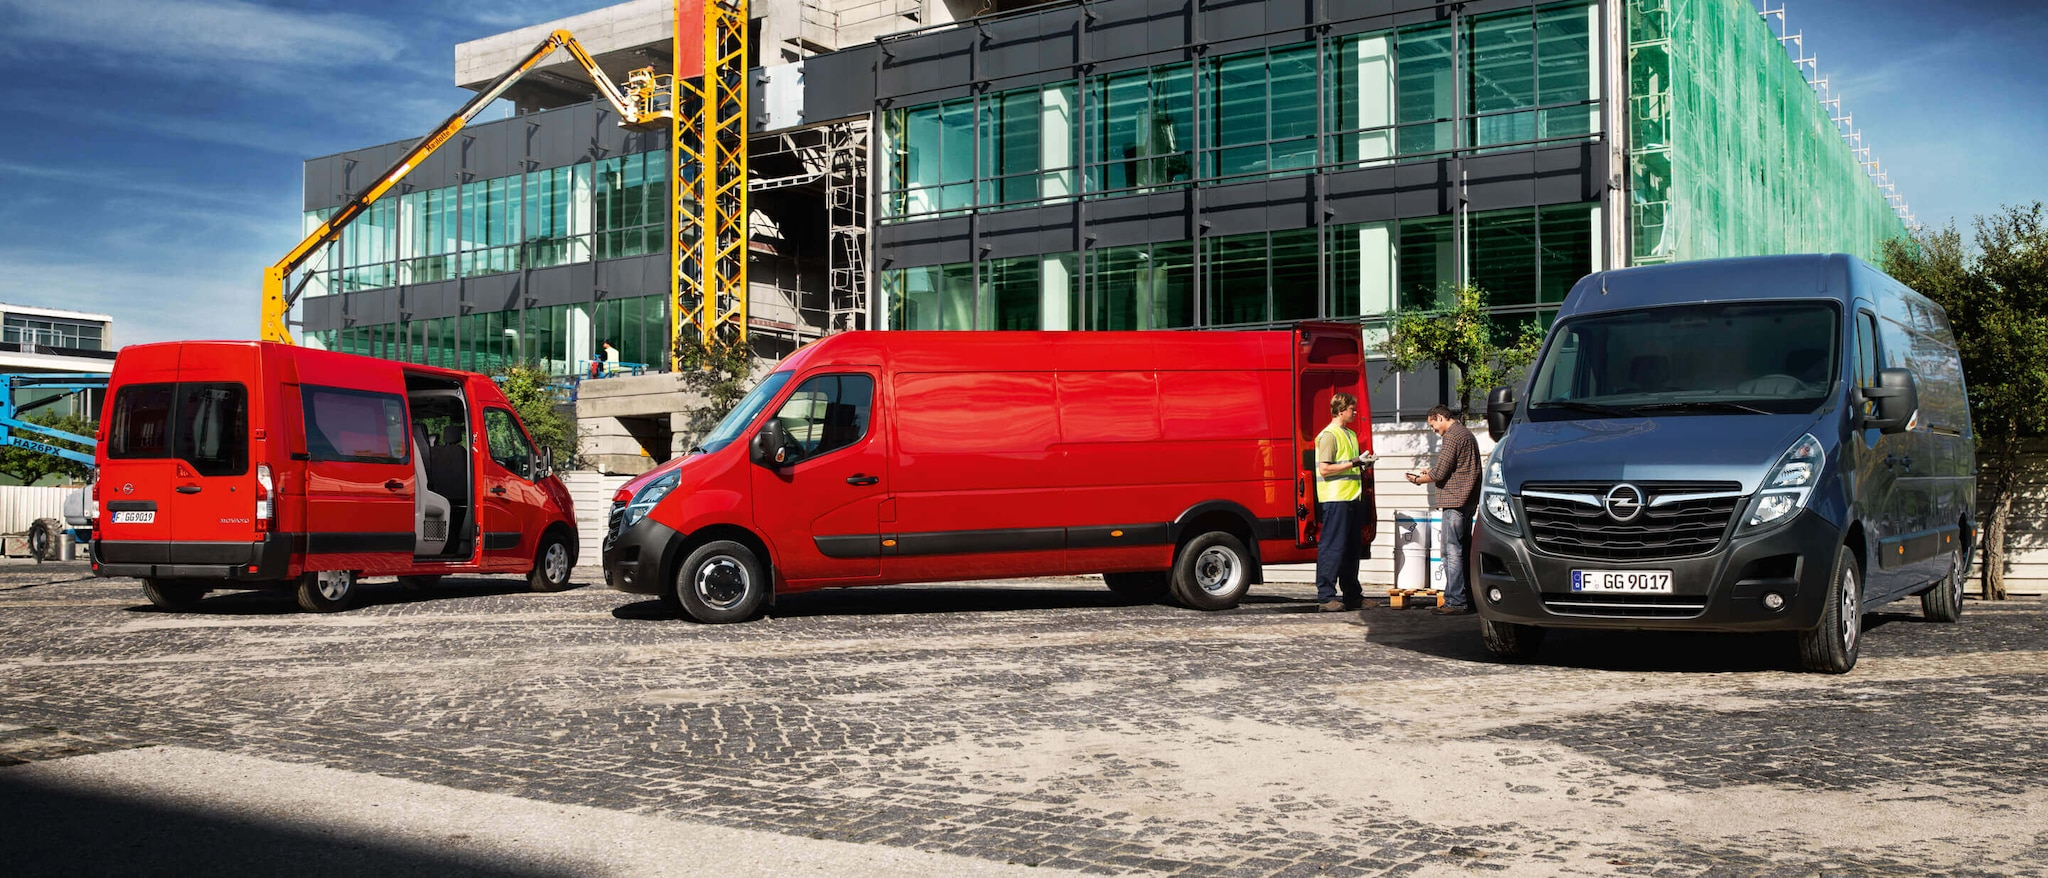 OPEL Movano Standard Double chassis cab 2.3 MT6 L3H1 3500 Crew FWD – SRW Diesel : Opel Movano Standard